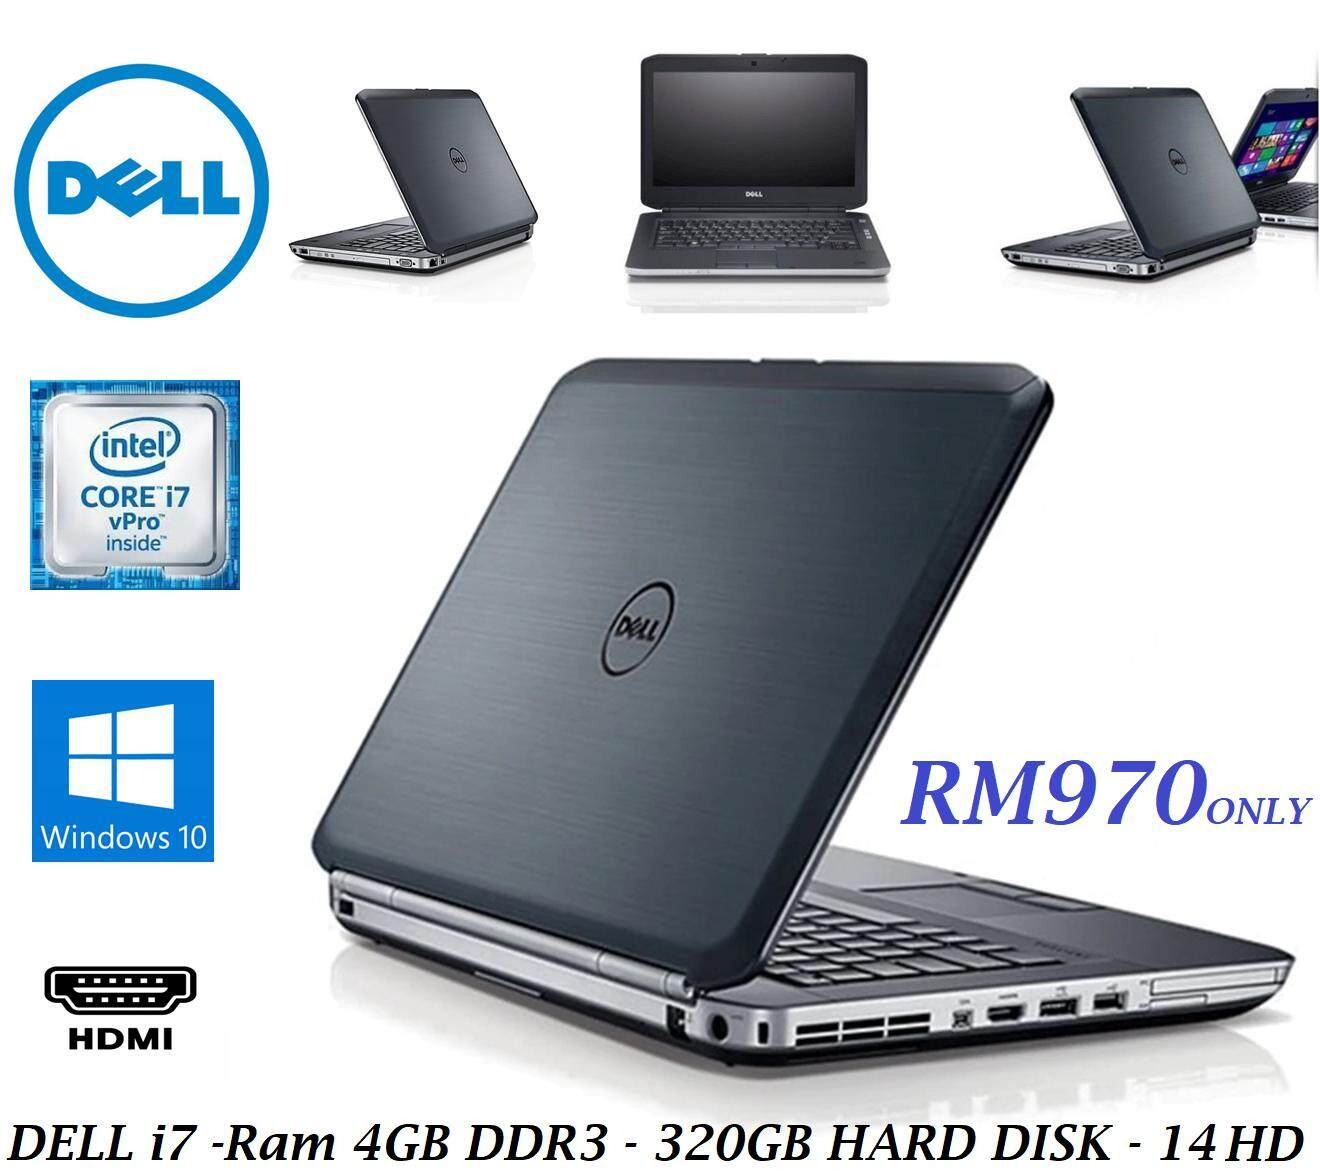 REFURBISHED DELL LATITUDE E5430 SUPERDUTY CORE i7 / 4GB RAM / 320GB HDD / 1 YEAR WARRANTY Malaysia